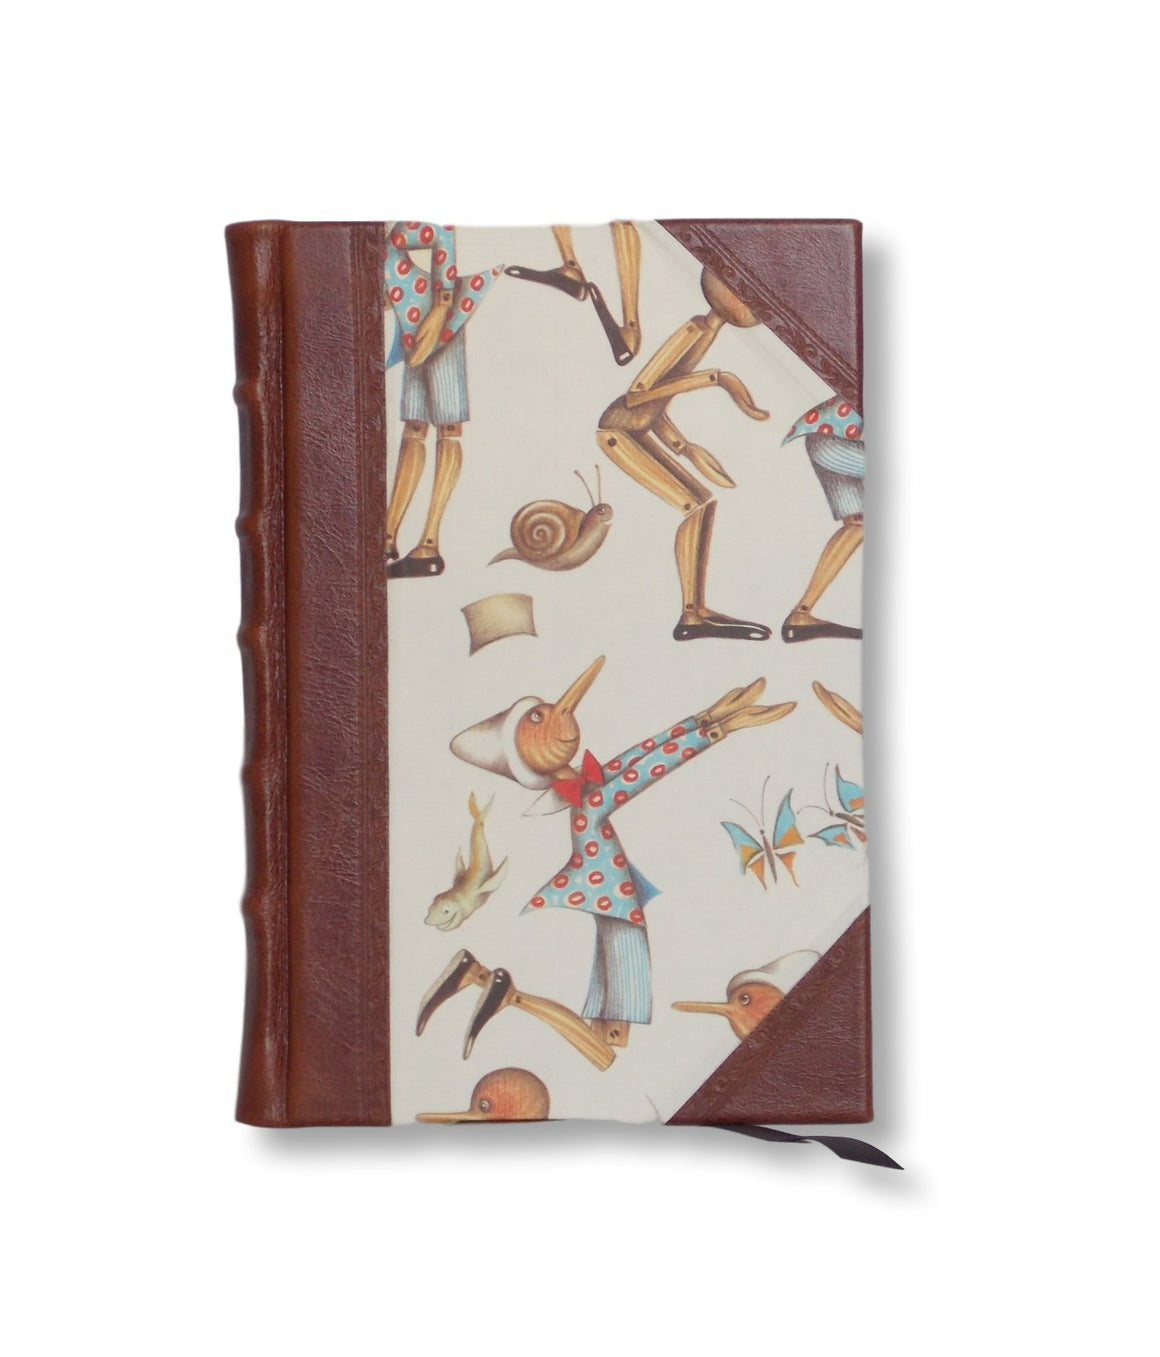 Half Leather Journal - Pinnochio